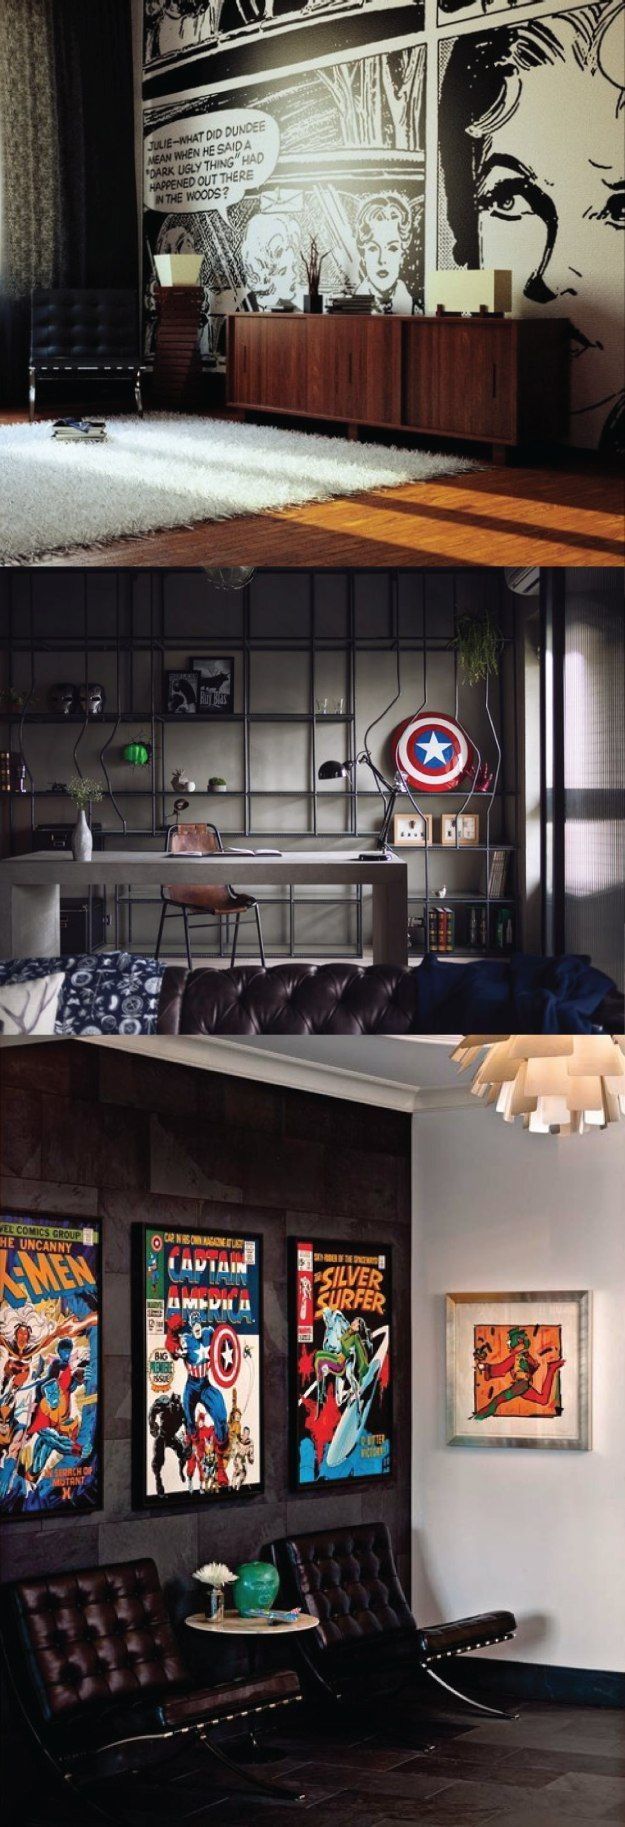 Man cave? This would be my woman cave! ------> Check out Man Cave Ideas for Real Men by DIY Ready at http://diyready.com/man-cave-ideas-for-real-men/